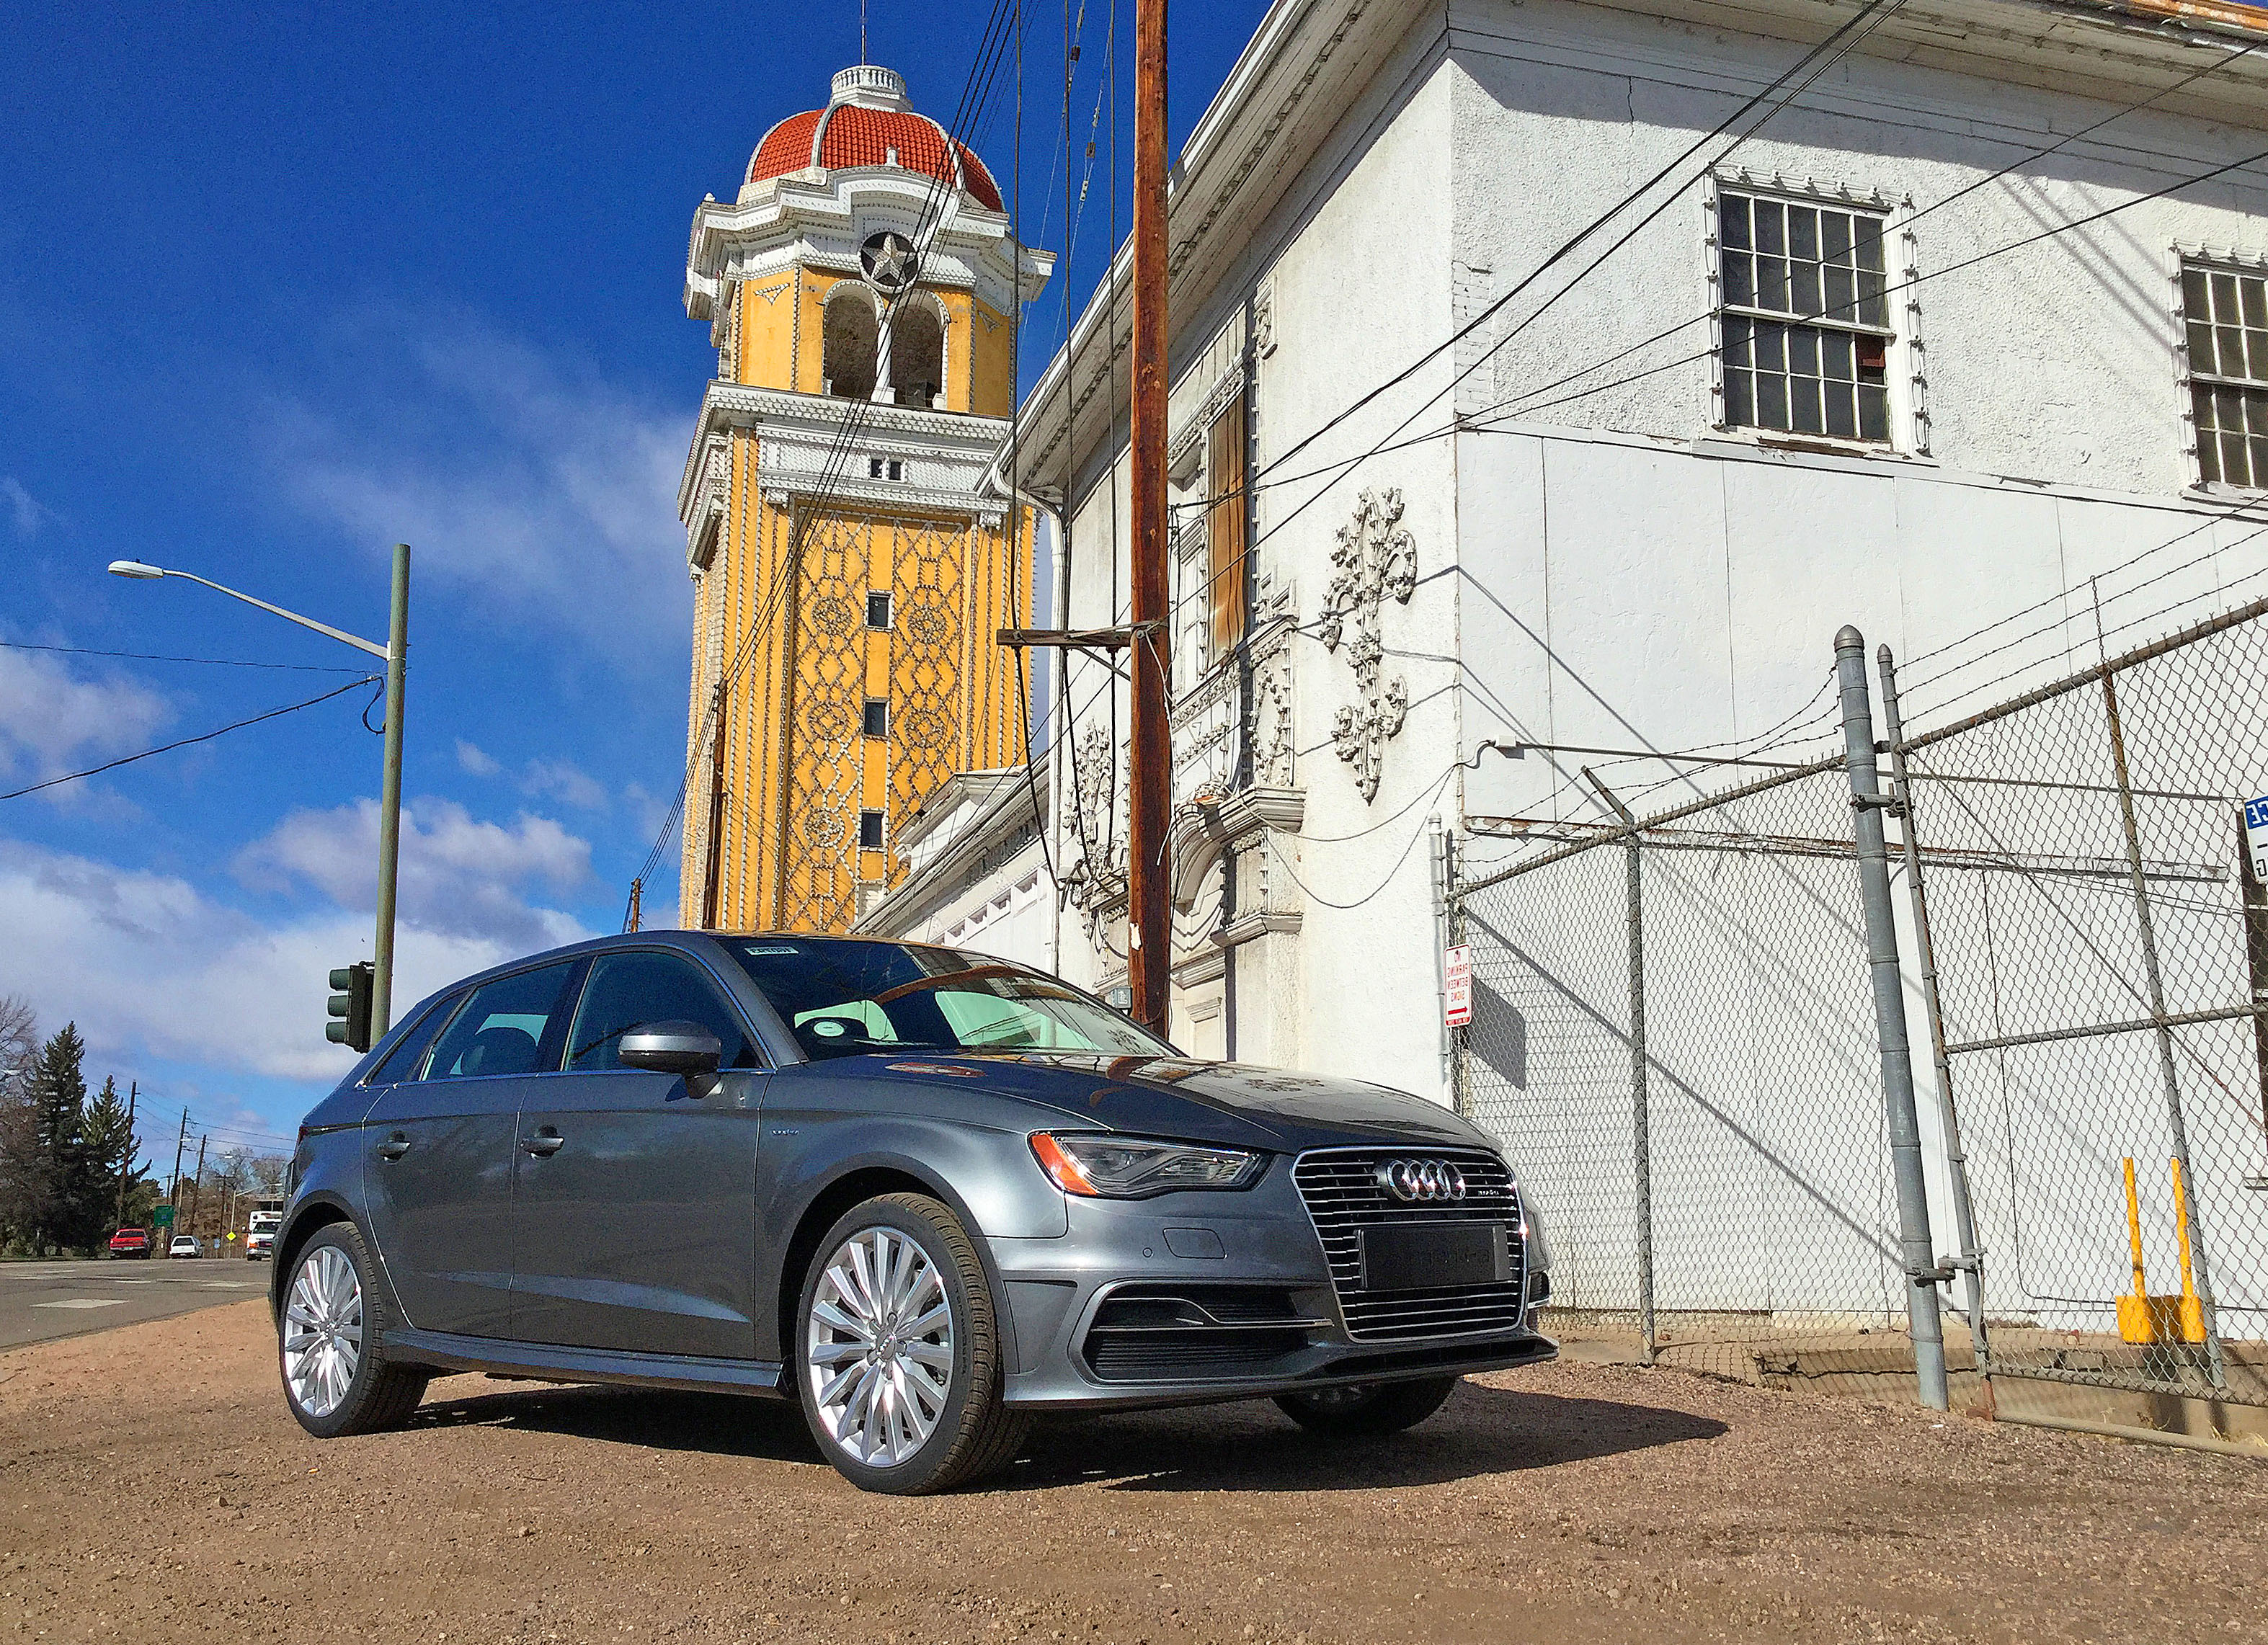 Audi A3 e-tron parked near Lakeside Amusement Park which sits immediately to the west of Denver's Berkeley neighborhood.